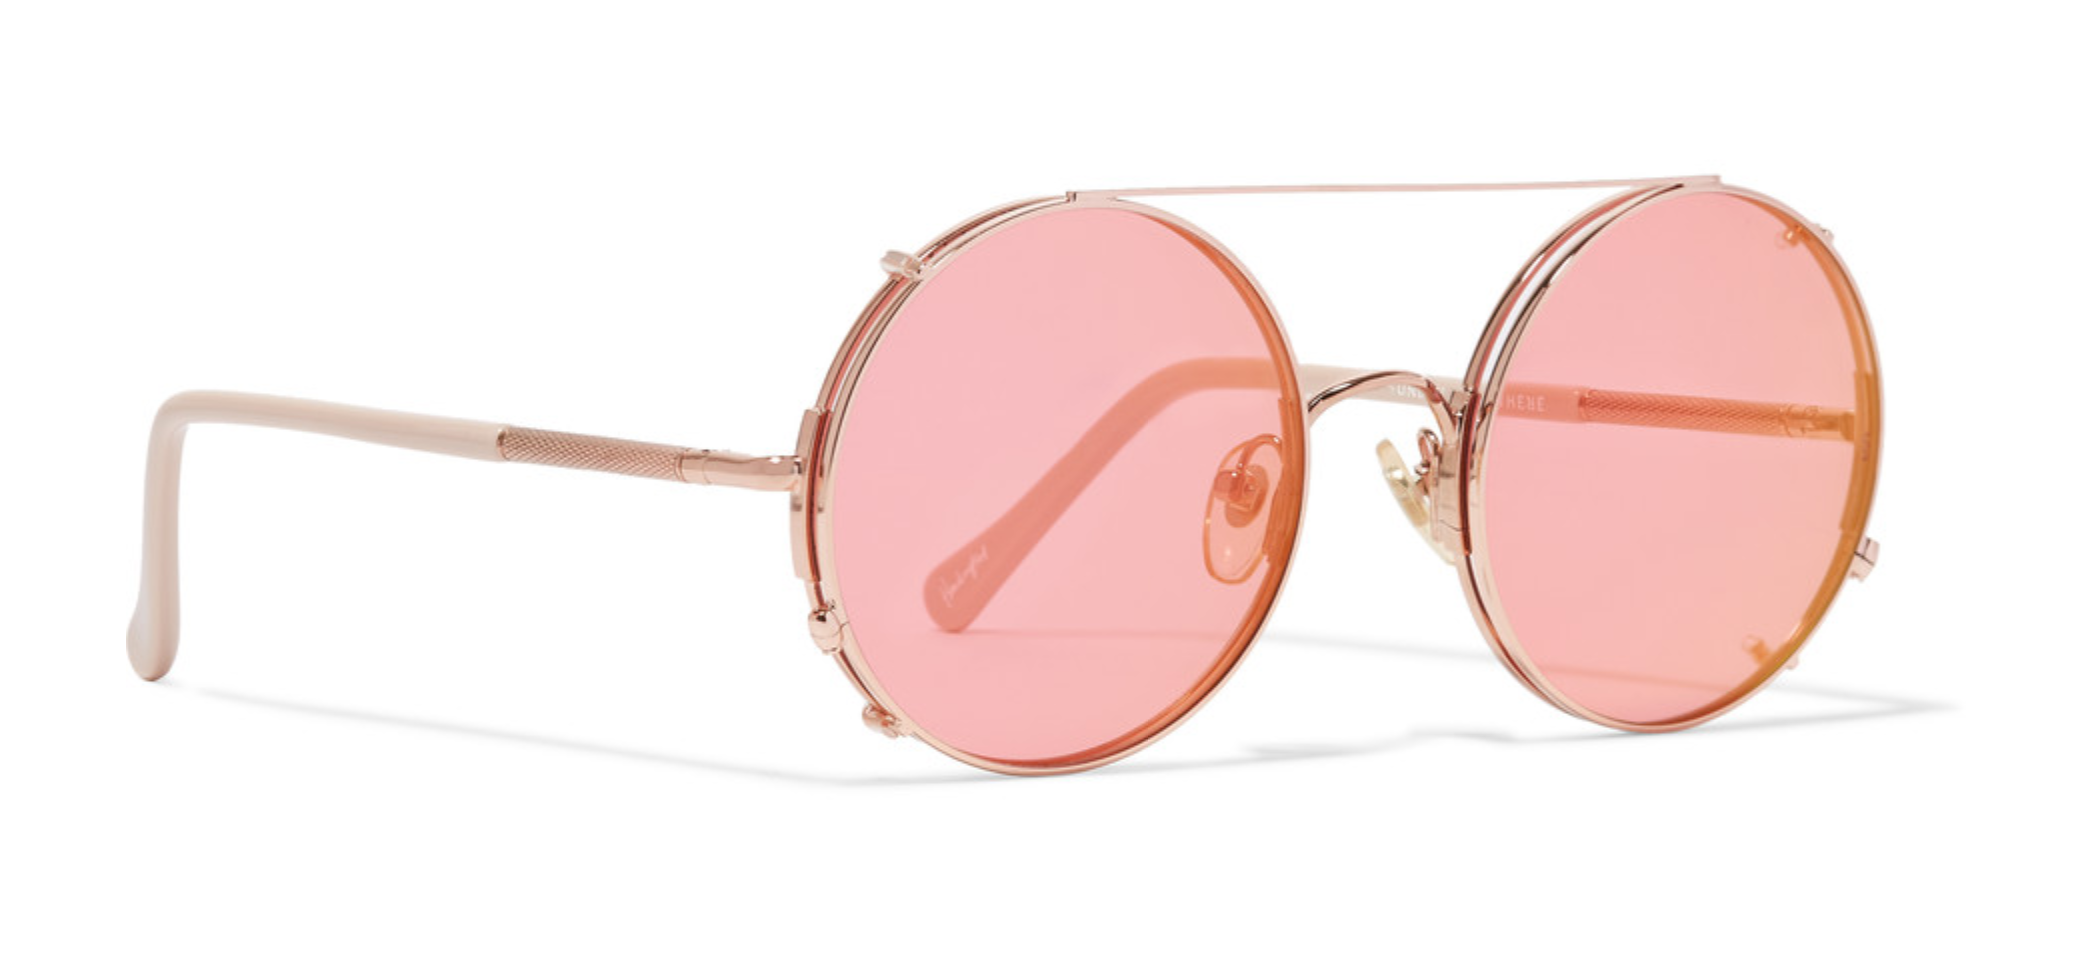 Sunday Somewhere,Valentine Sunglasses    I first saw about this brand on Harper's Bazaar, now I see the world through rose-colored glasses.